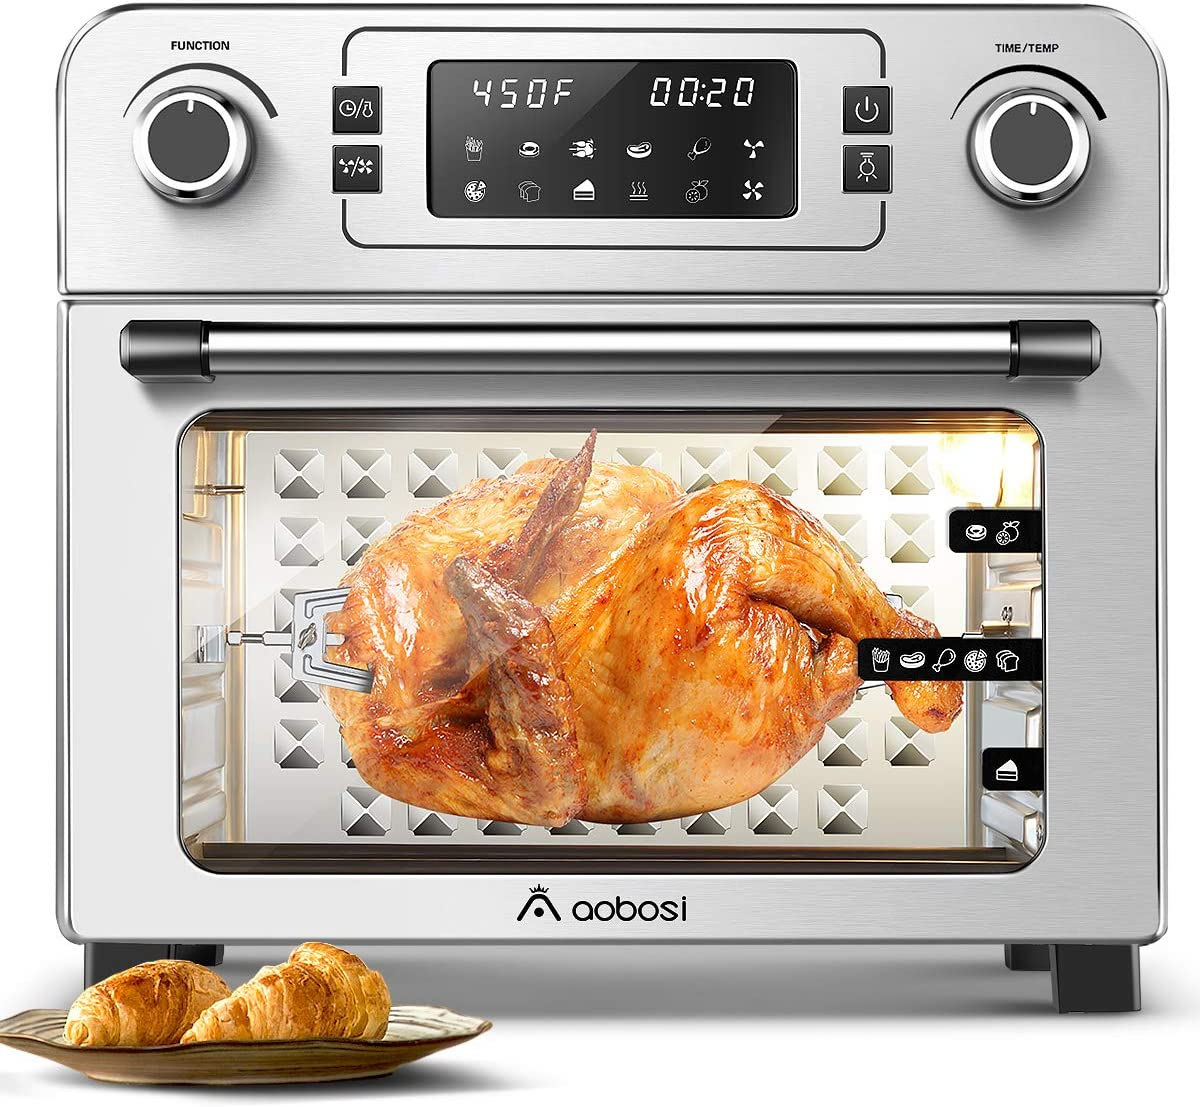 Aobosi Toaster Oven Air Fryer Oven Toaster Convection Oven Digital Countertop Rotisserie Oven Pizza Oven 10-in-1 Multi-Function Toast/Roast/Broil/Bake/Dehydrate|Large 24Qt|Recipe|1700W